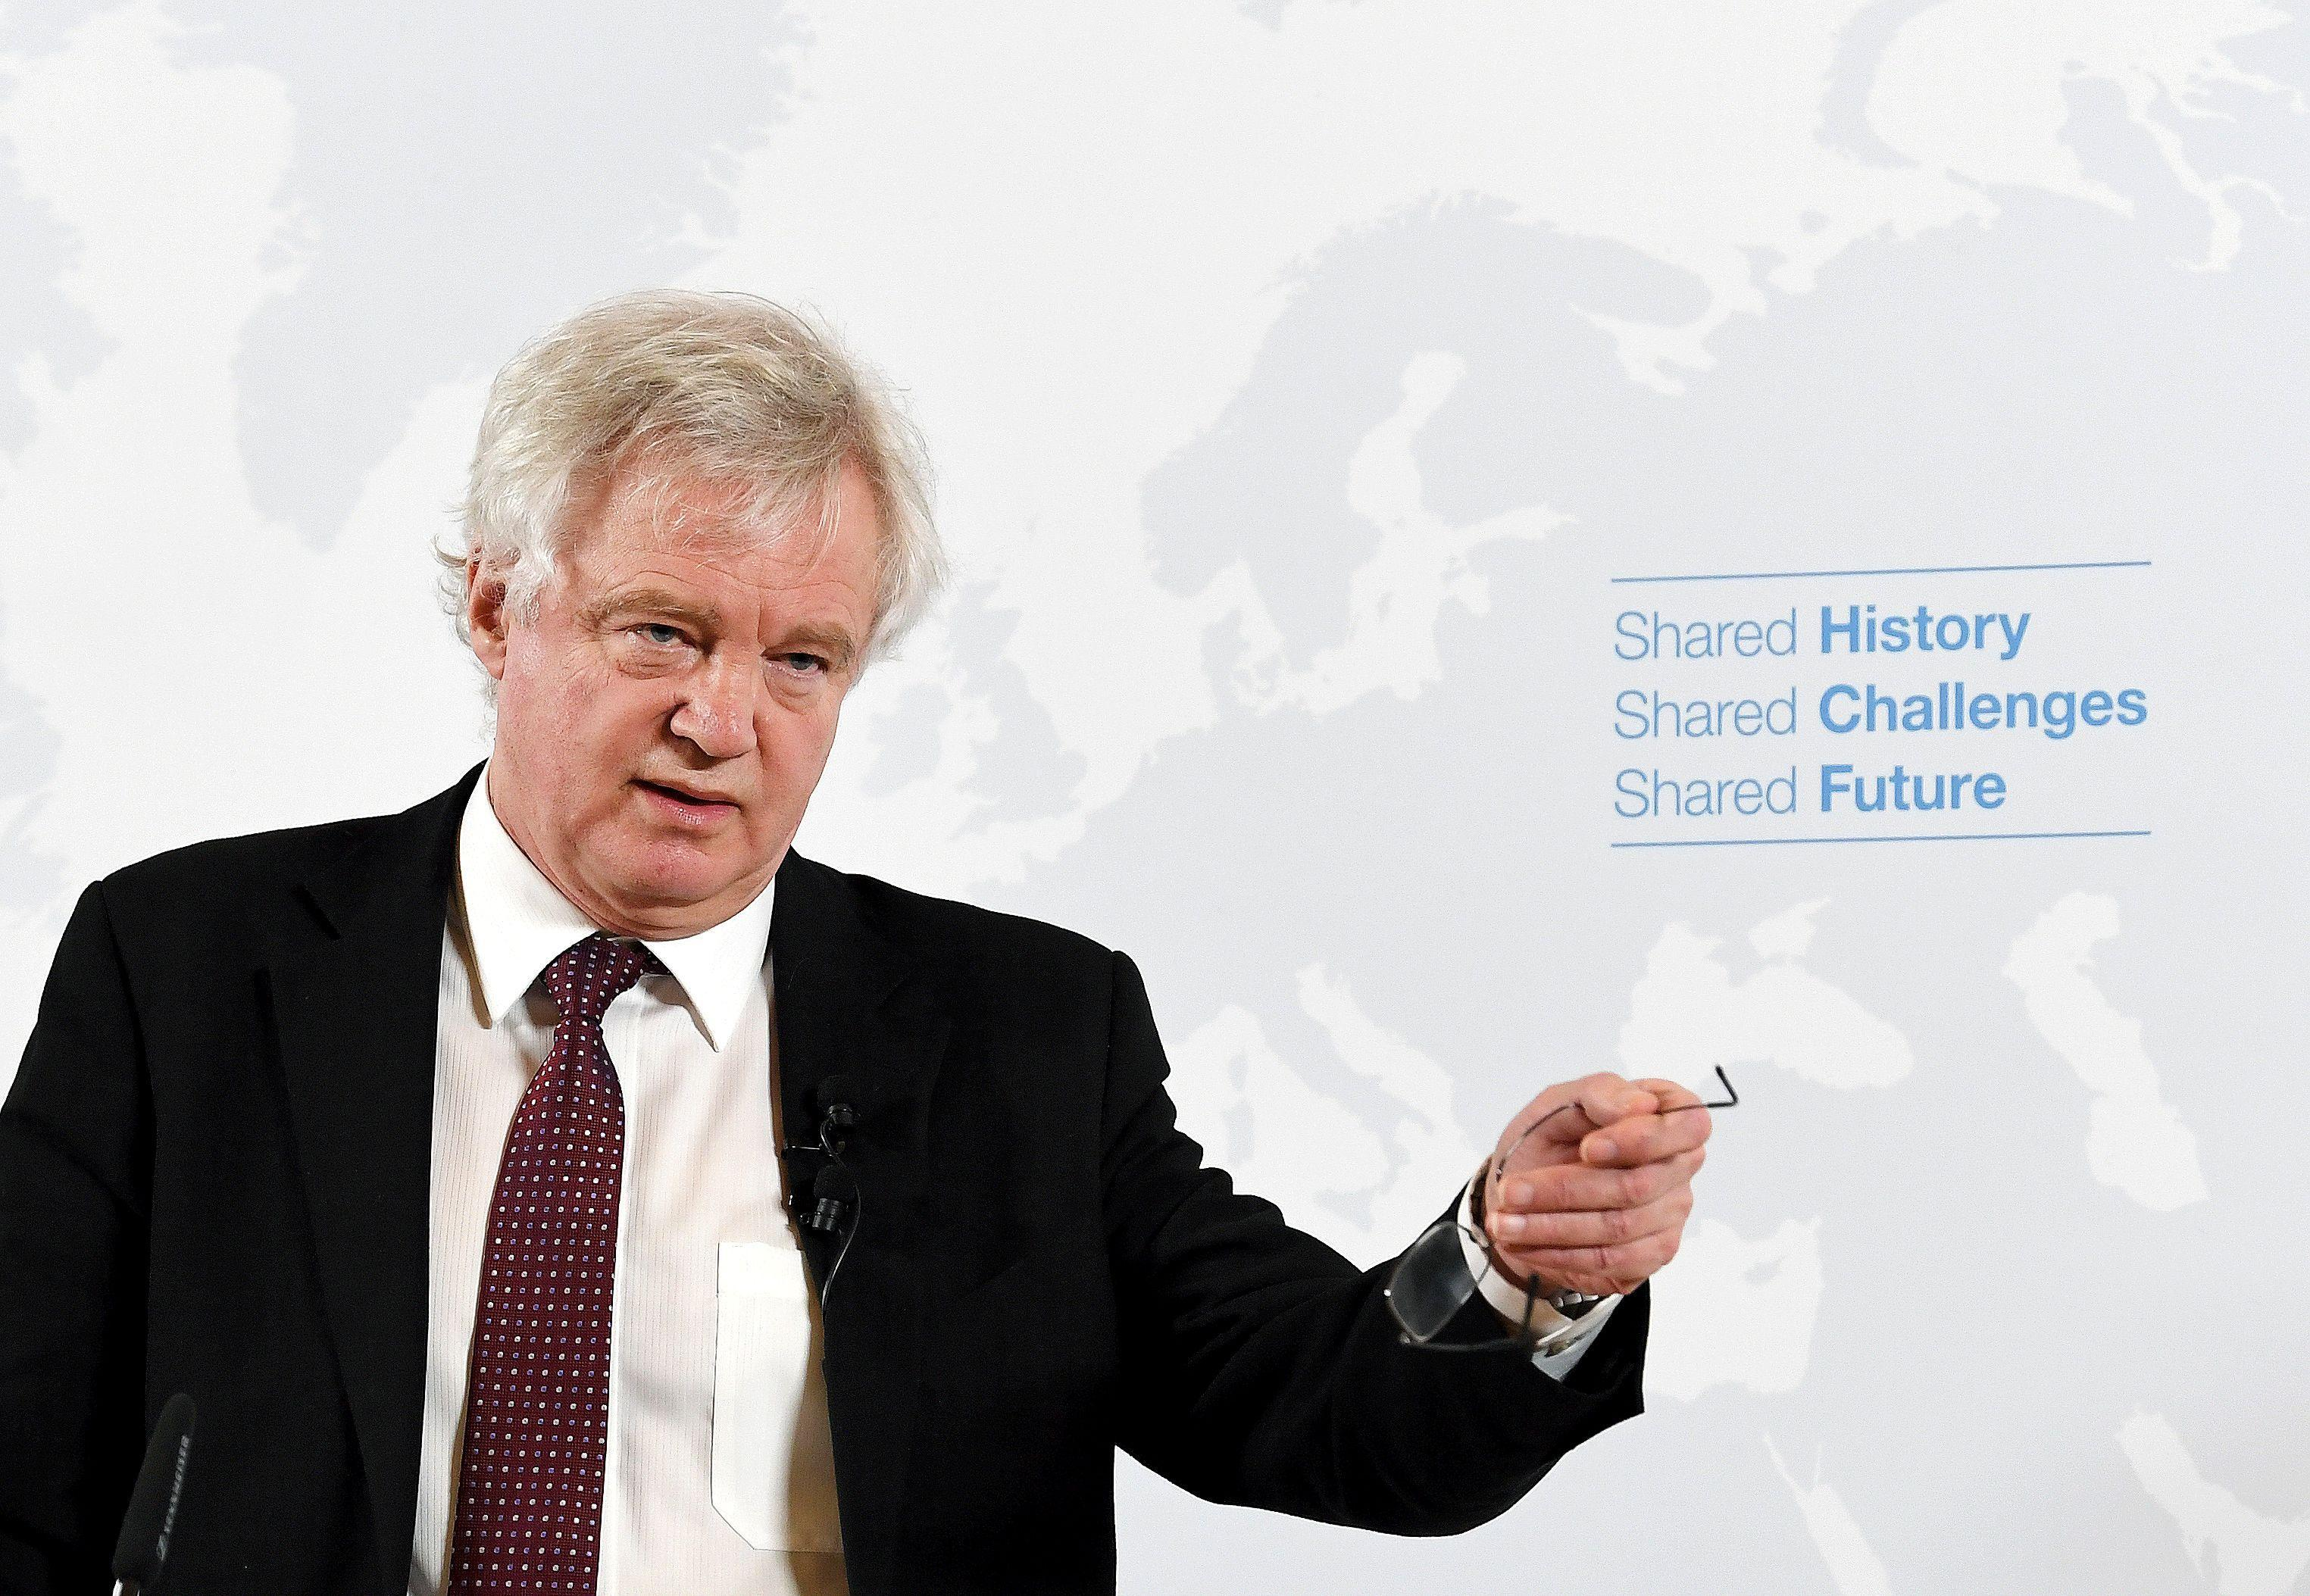 David Davis says a Brexit deal with the EU is 'well on the cards' for later this year as he denies claims he's too lazy to negotiate properly